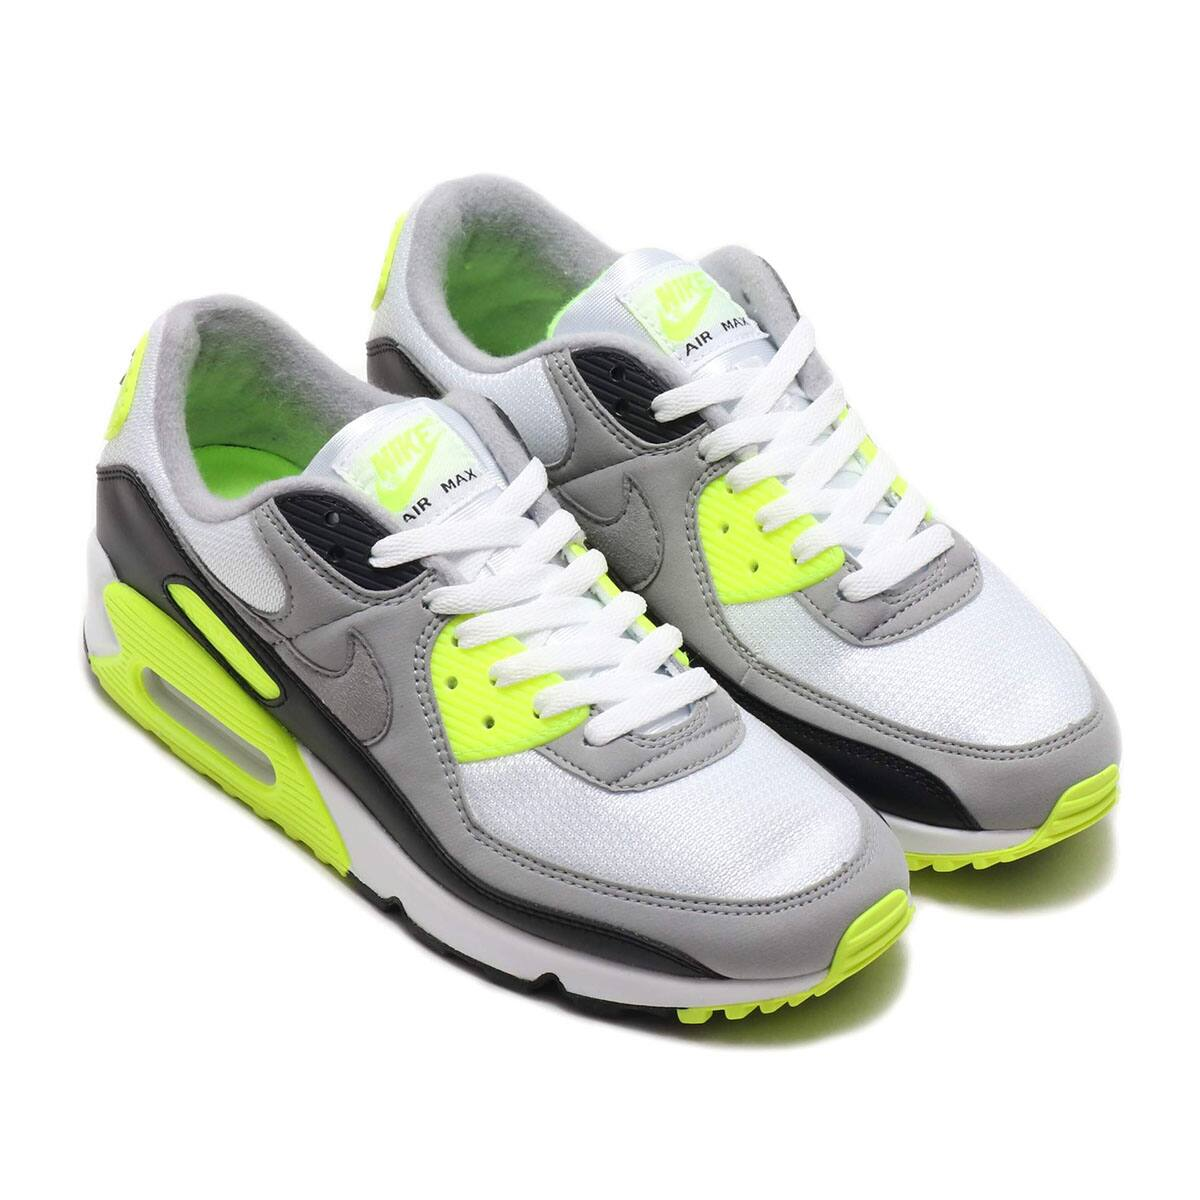 NIKE AIR MAX 90 WHITE/PARTICLE GREY-VOLT-BLACK 20SP-S_photo_large